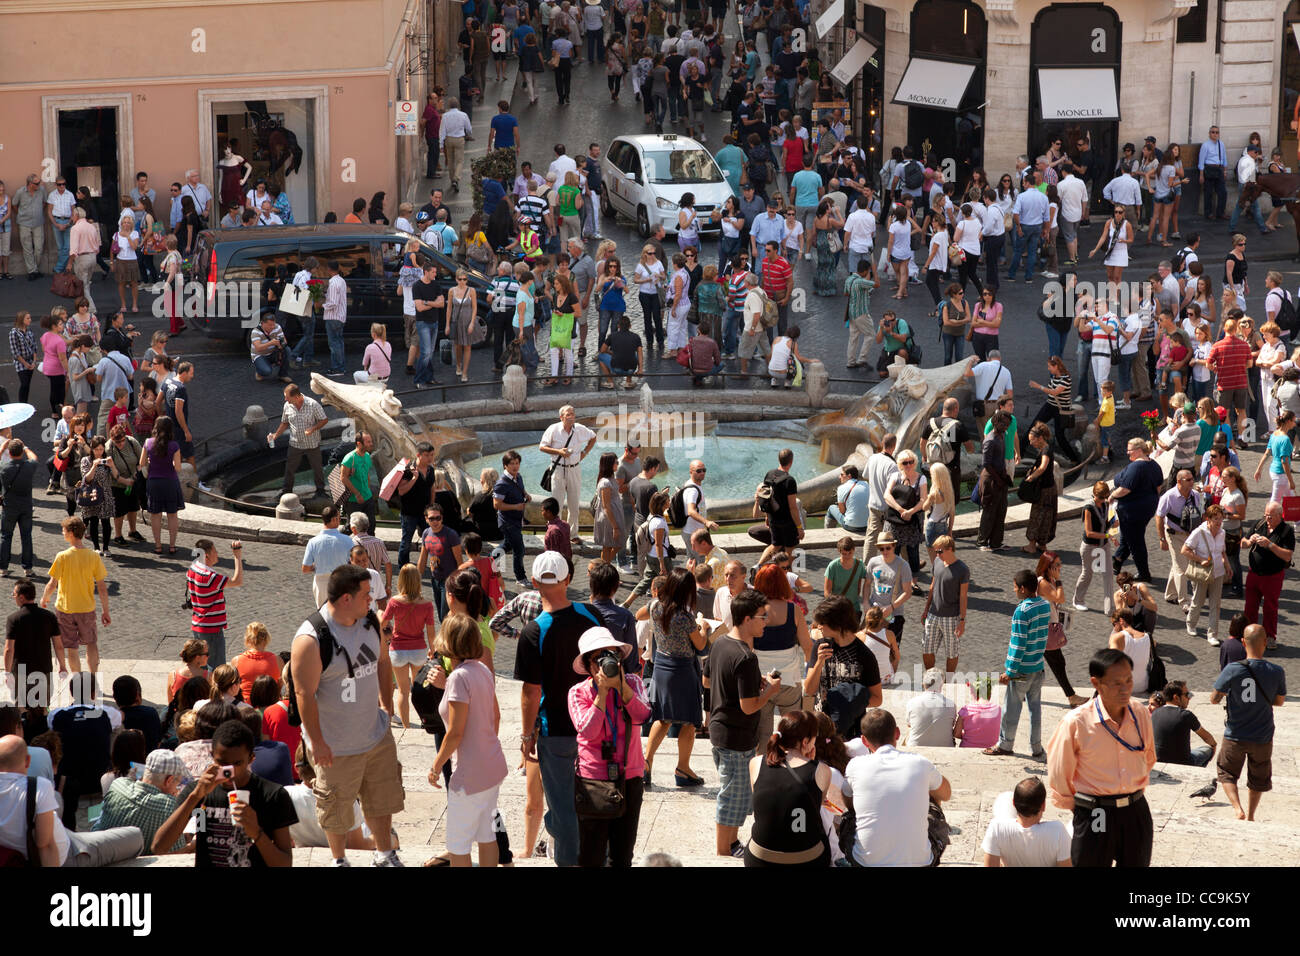 crowds of tourists at the spanish steps in rome - Stock Image